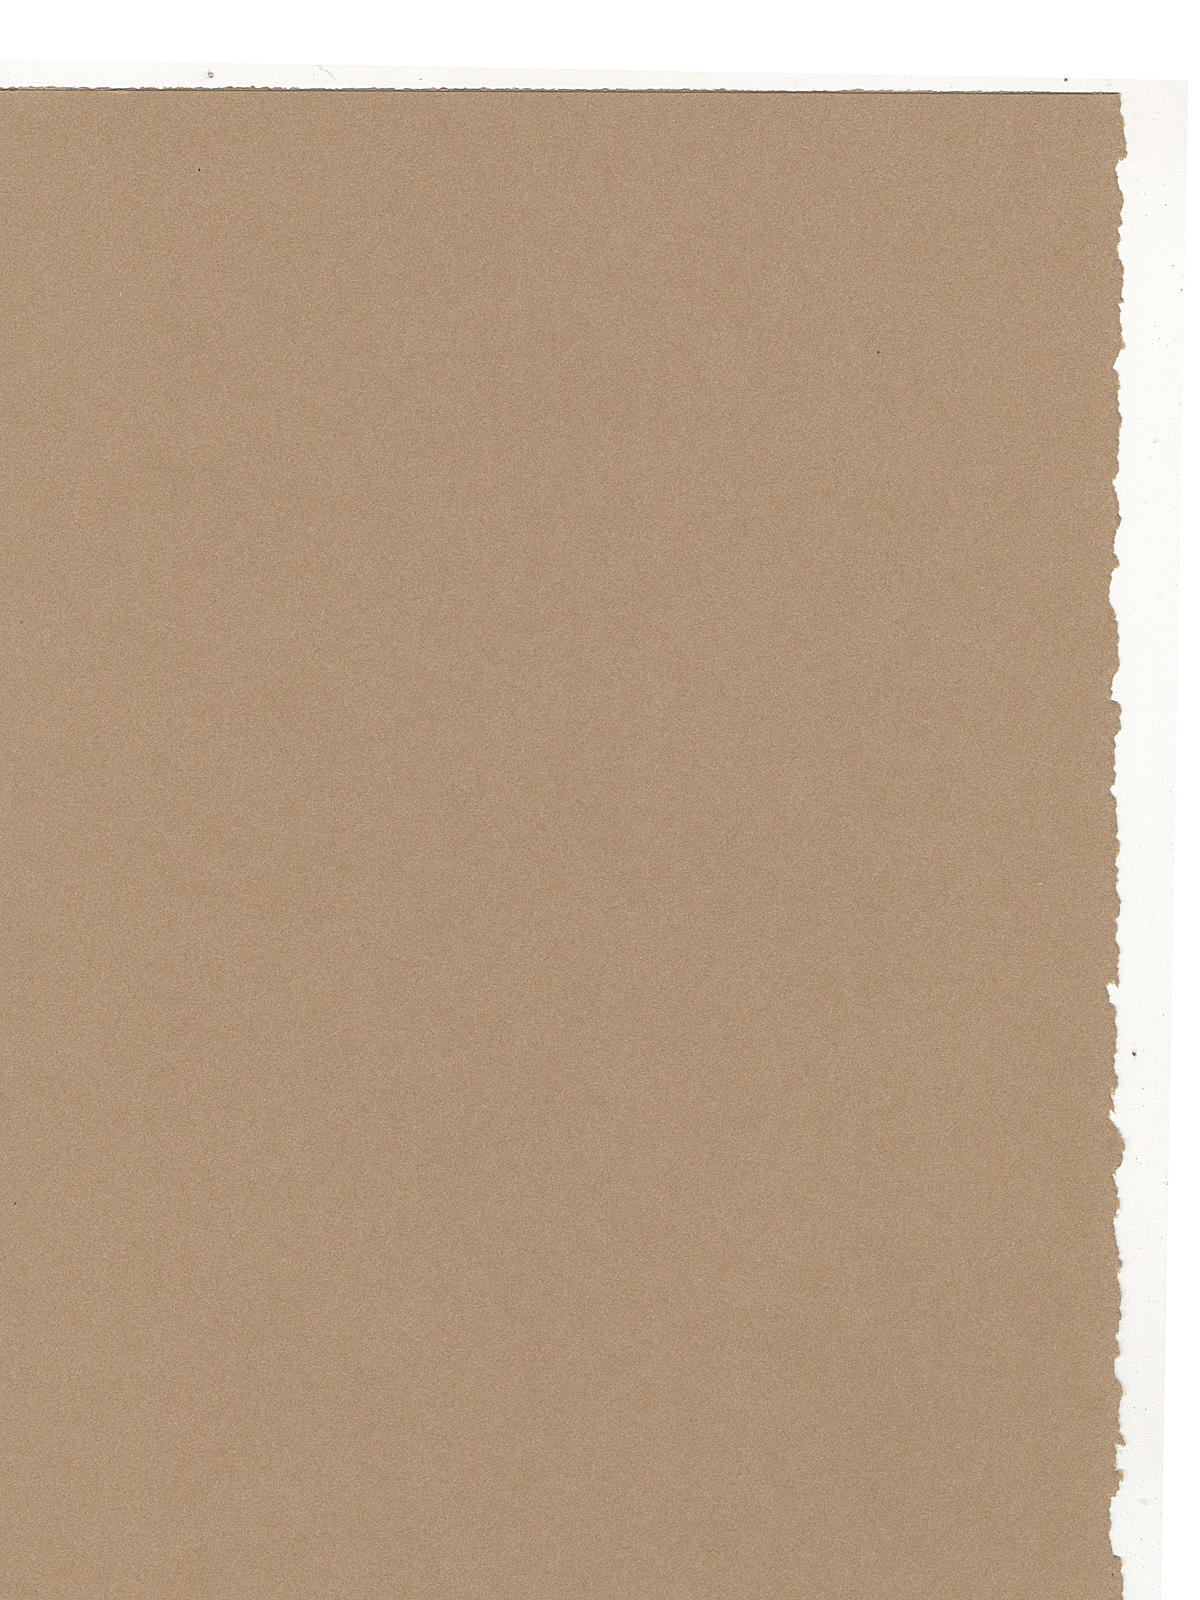 stonehenge paper Stonehenge padsthe same wonderful stonehenge paper that is so popular for  drawing and printmaking is now available in pad form these pads have 15.